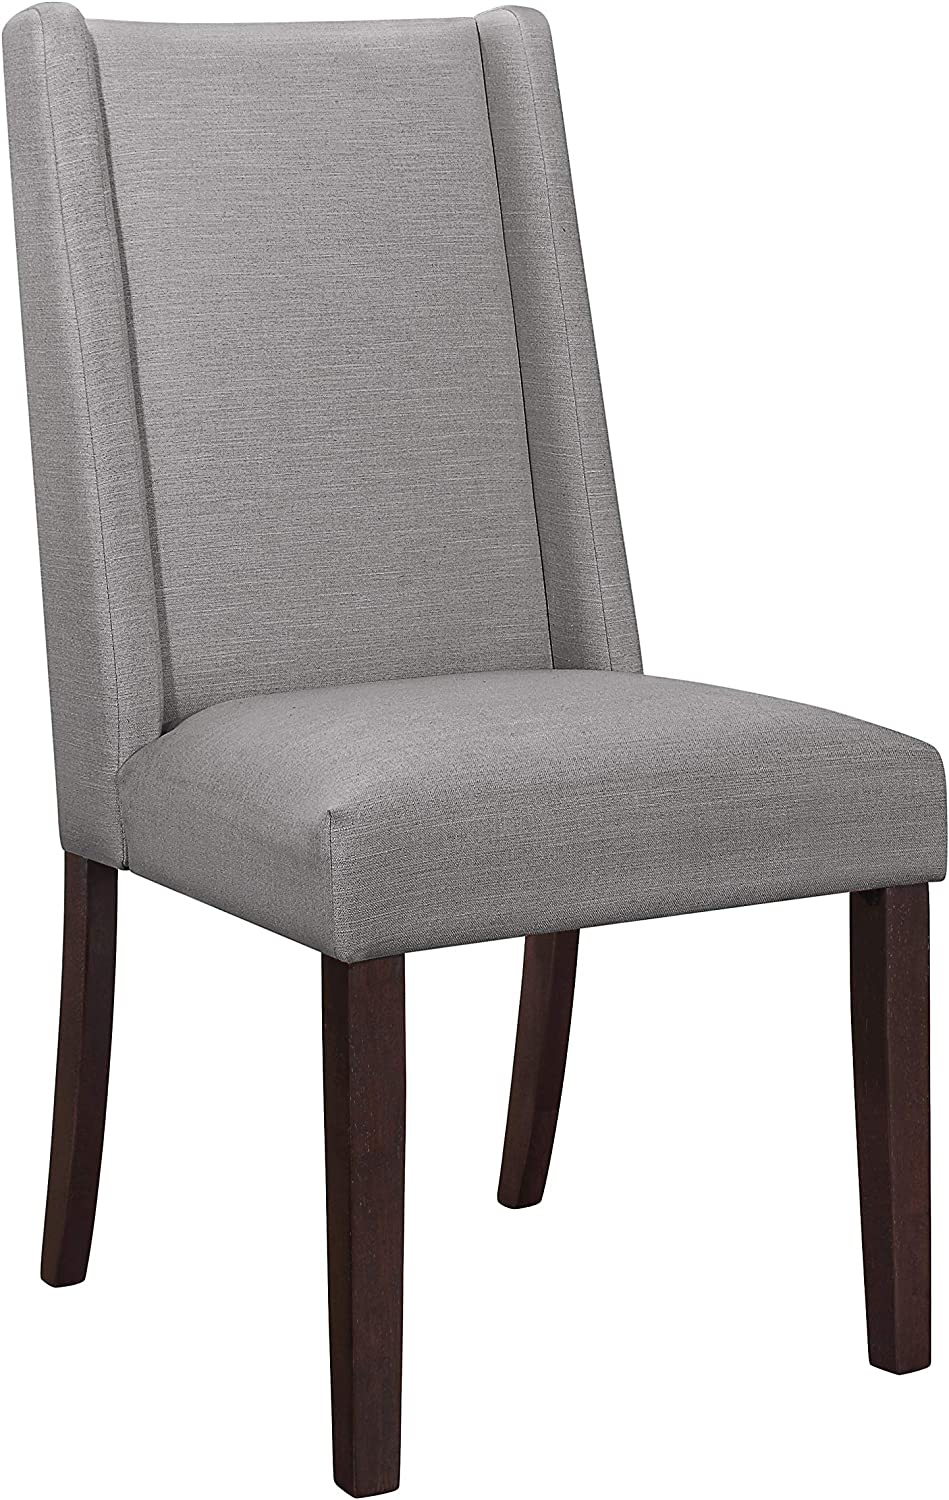 "Coaster Home Furnishings Searcy Upholstered Parson Light Grey (Set of 2) Dining Chair, 20"" D x 25"" W x 40"" H, Gray"